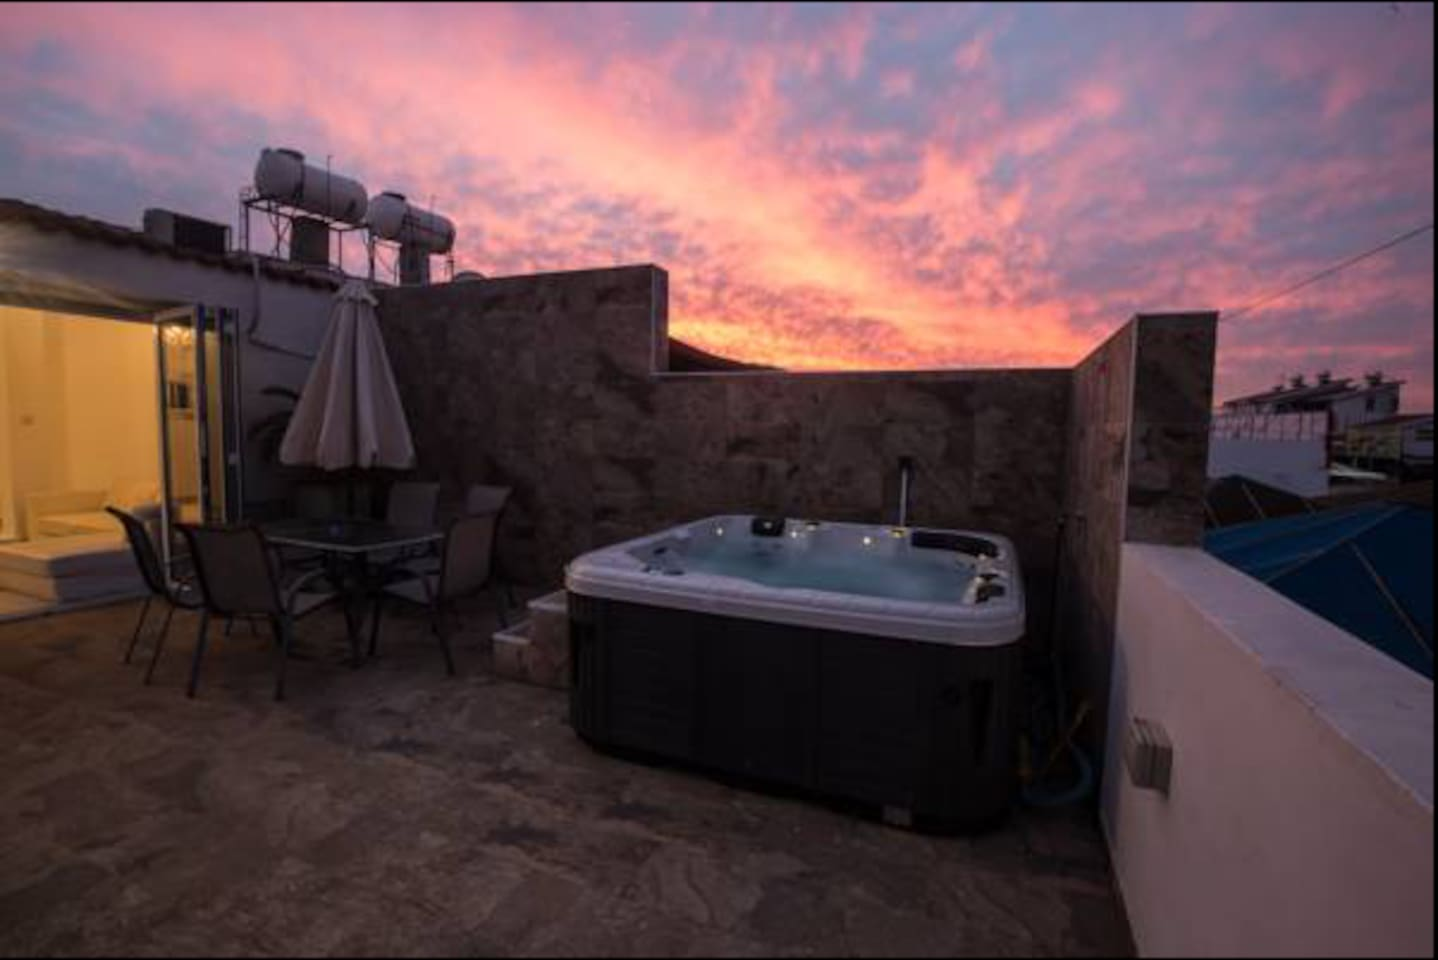 Our outdoor heated jaccuzi